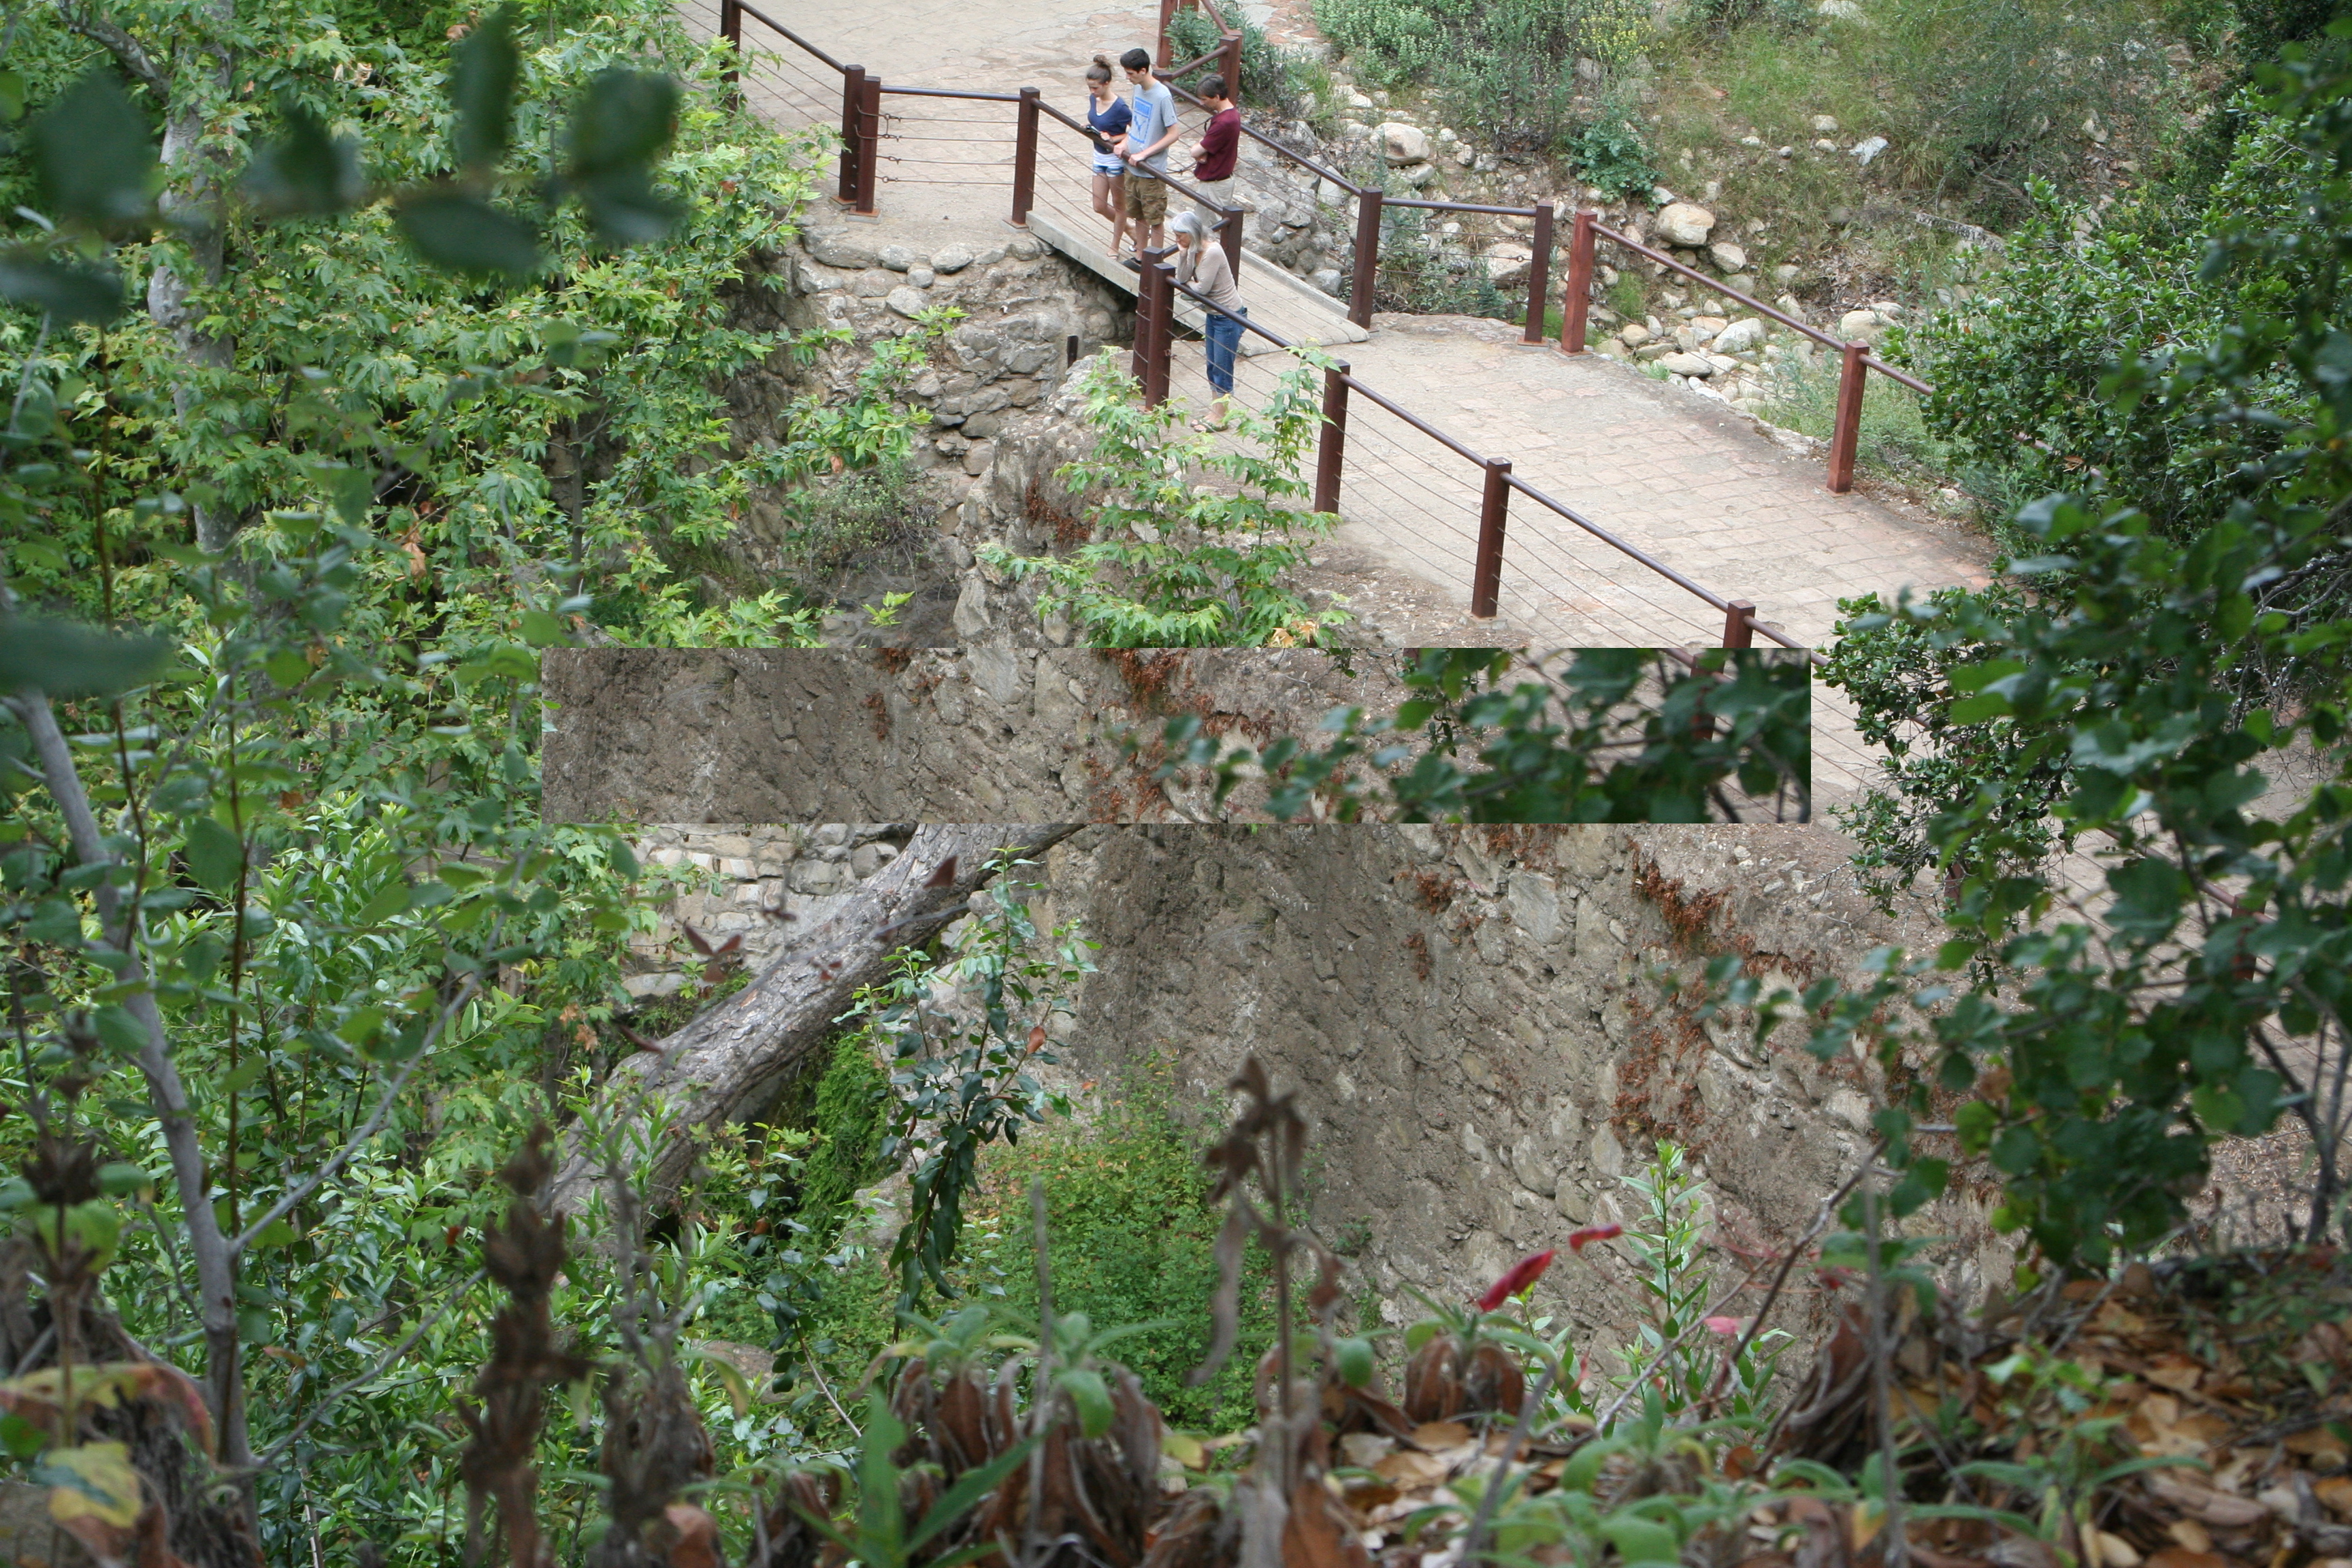 Copy of mission dam with people